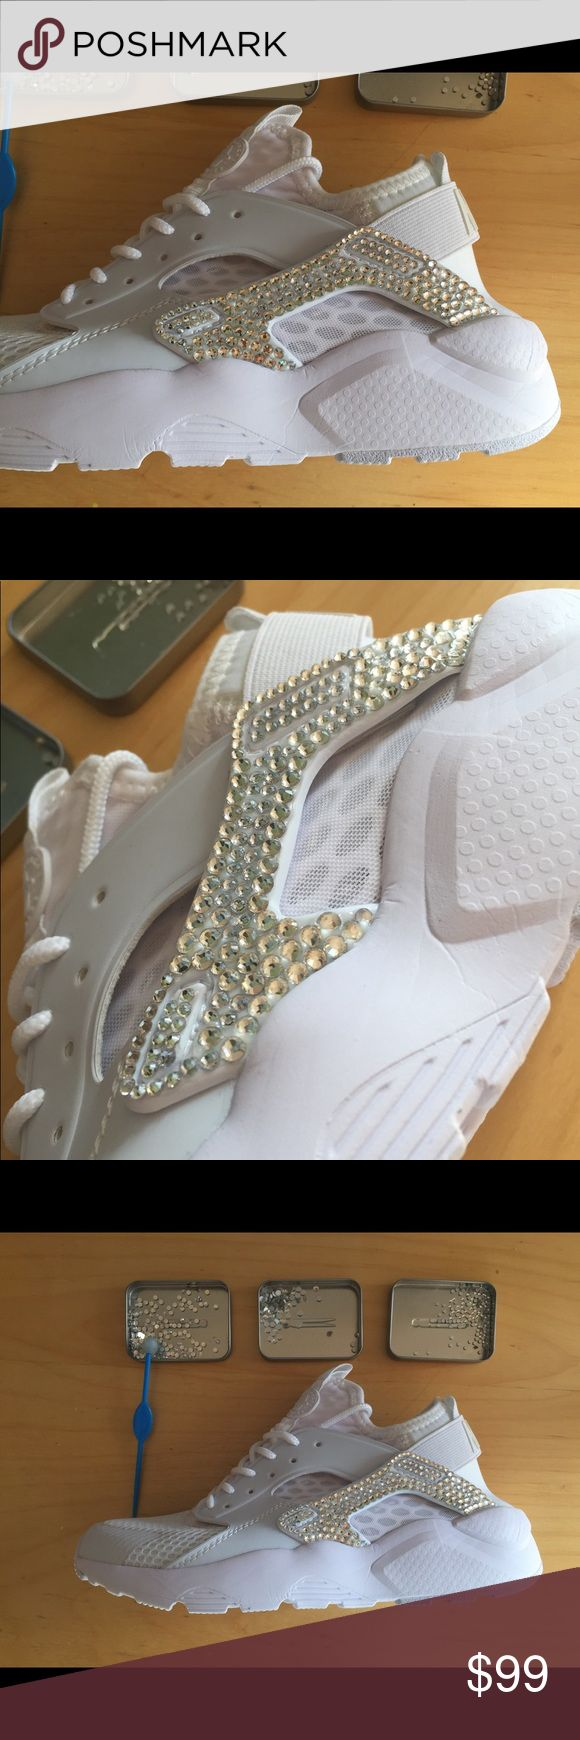 Handmade Crystal Nike White Human Race New in the box.  Adidas Nike, Jordan, KD, Lebron, Foamposite, SB, Fly, Max, Kids, Elite, 11, 13, Pack, Glow, gold, oreo, yeezy, gold, super, Supreme, Jacket, sandals, 4, red, 5, hare, georgetown, 90, bred, hare, Golden, warriors, curry, mvp, under, Bred, 1, Chicago, Pro, What, Championship, nike, Jordan, KD, Lebron, Foamposite, SB, Fly, Max, Women, Kids, Elite, 11, 13, Pack, Glow, gold, oreo, yeezy, gold, super, Supreme, Jacket, sandals, 4, red, 5…